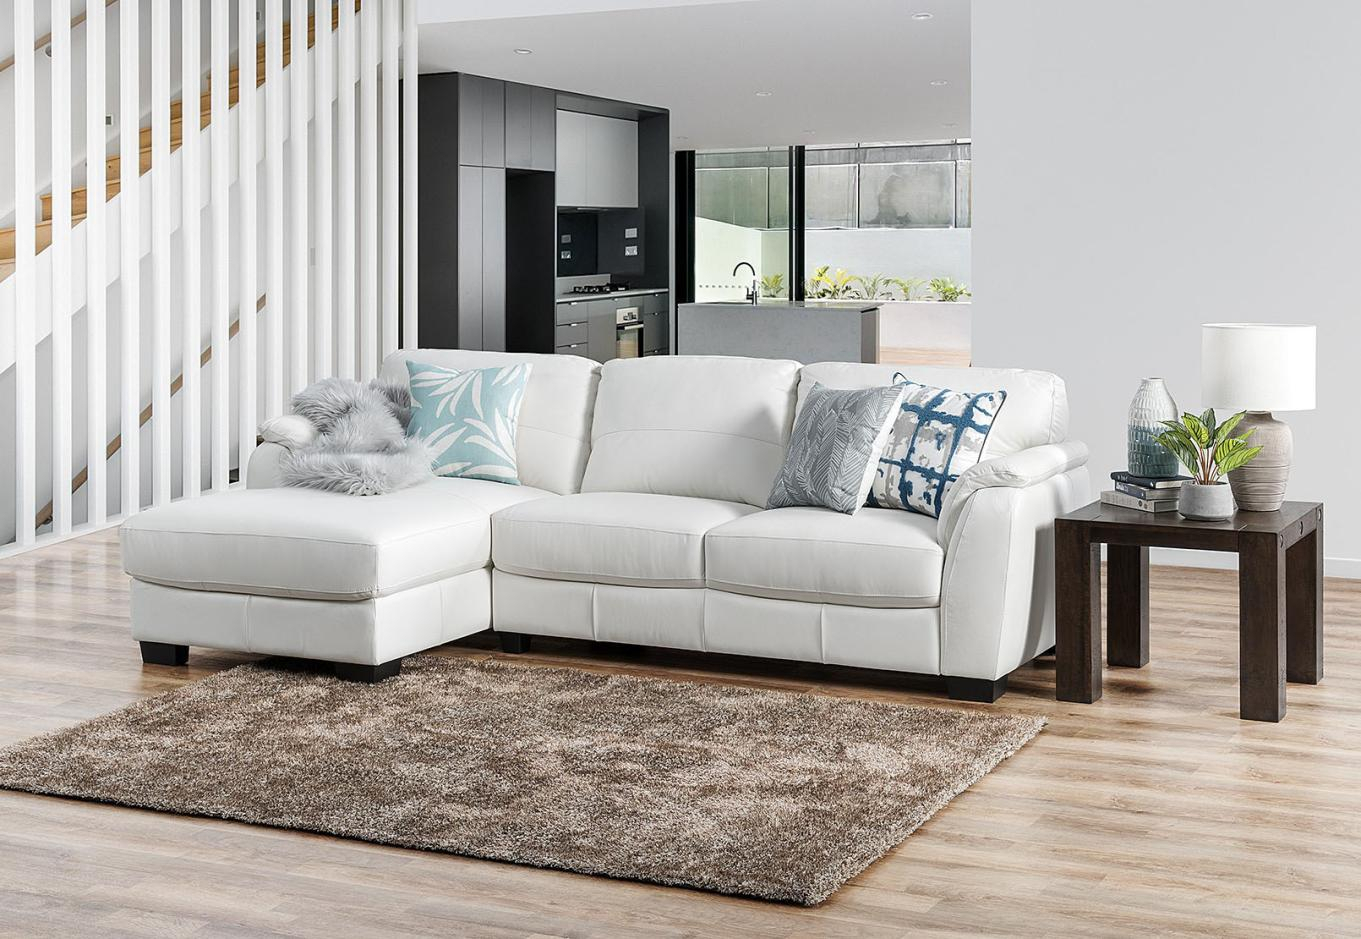 Marissa Leather 3 Seater Chaise White – Sofas, Lounges & Couches For Marissa Sofa Chairs (Image 9 of 20)